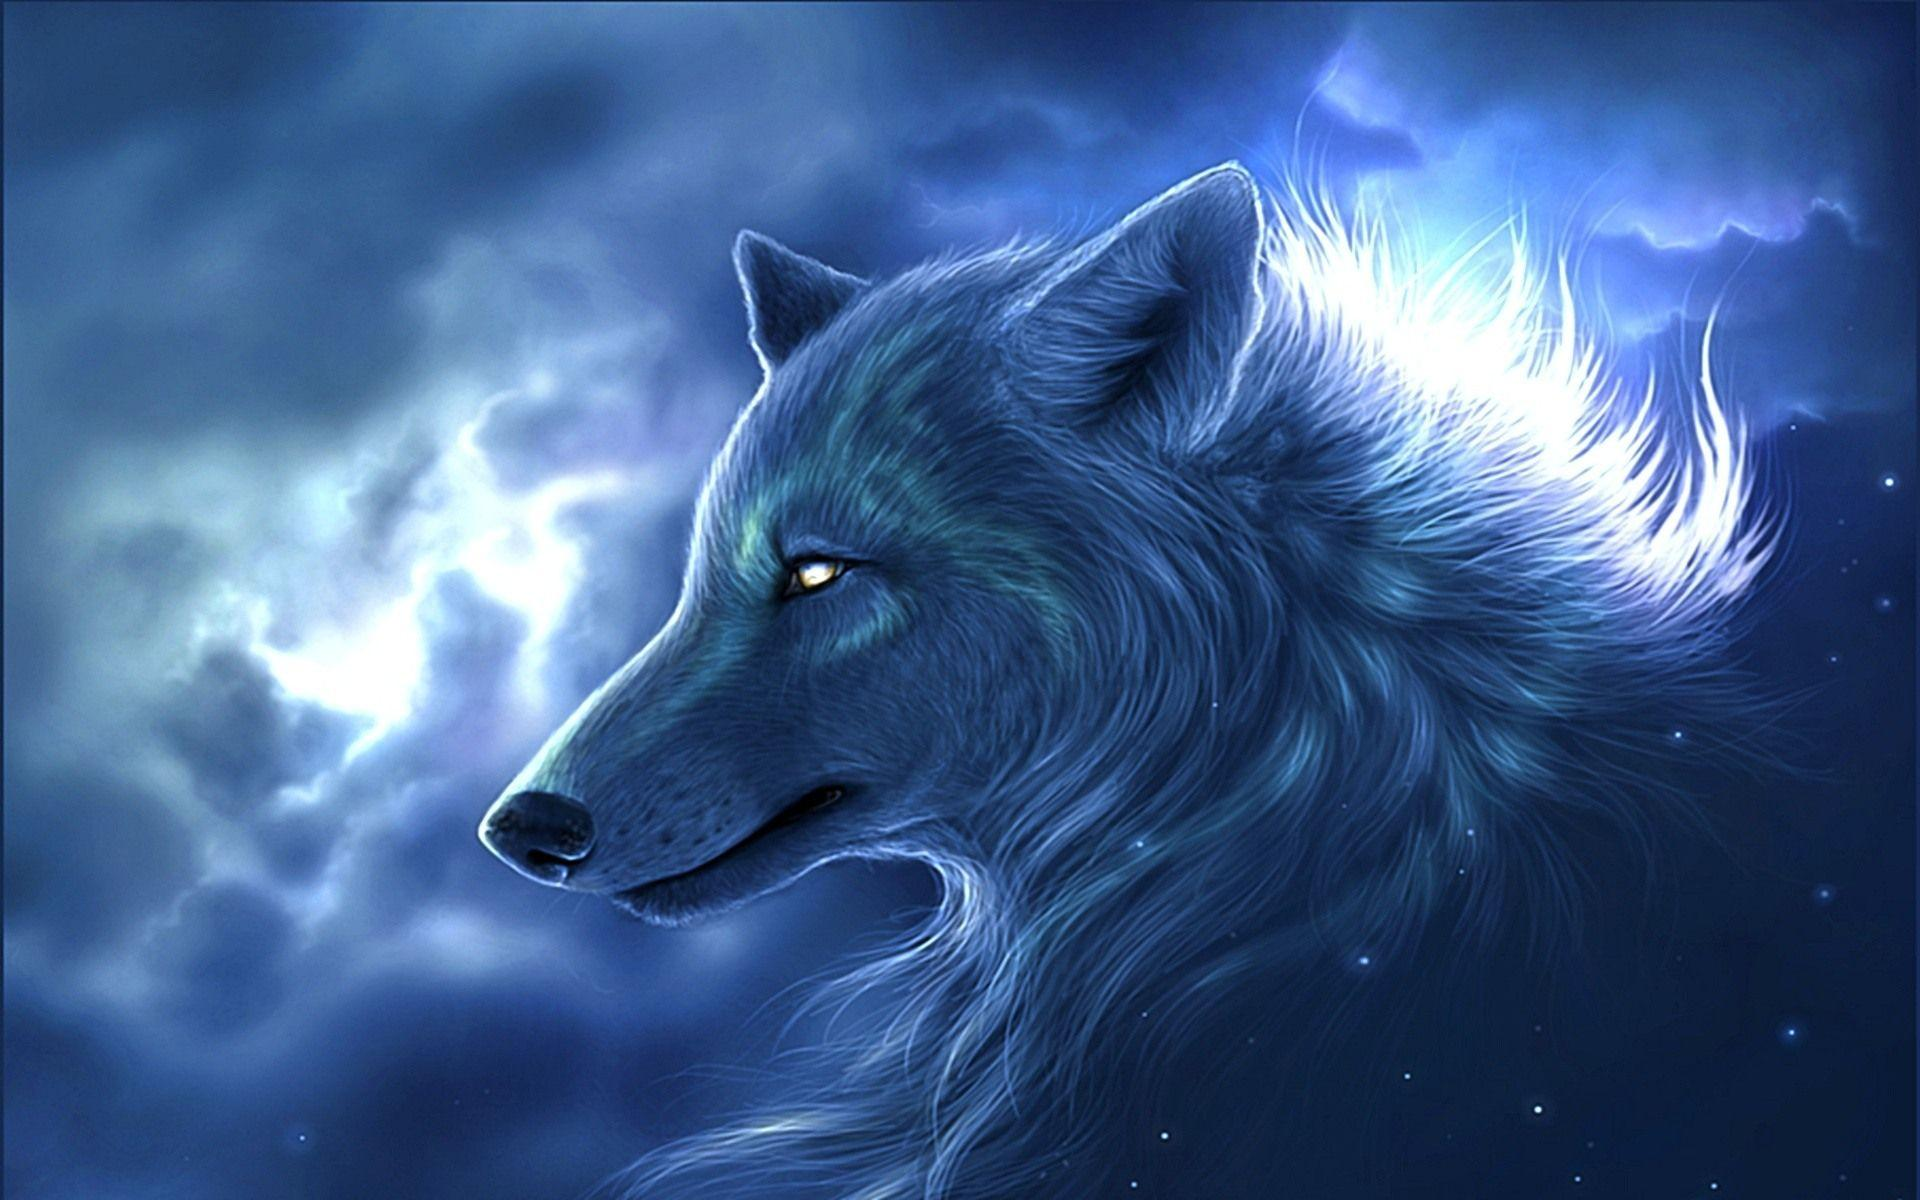 Hd wallpaper wolf - Wolf Wallpaper Wolf Wallpaper Part 2